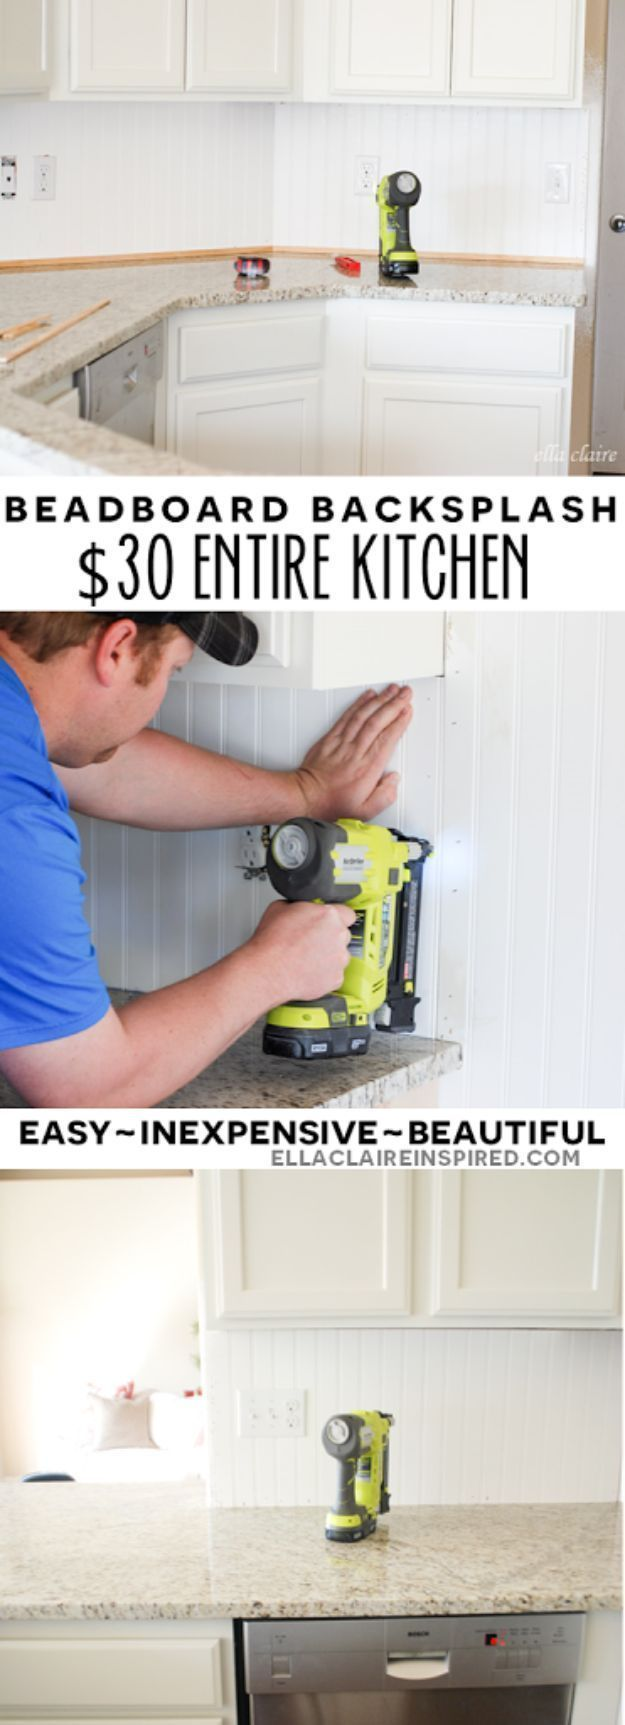 DIY Home Improvement Projects On A Budget - $30 Beadboard Kitchen ...